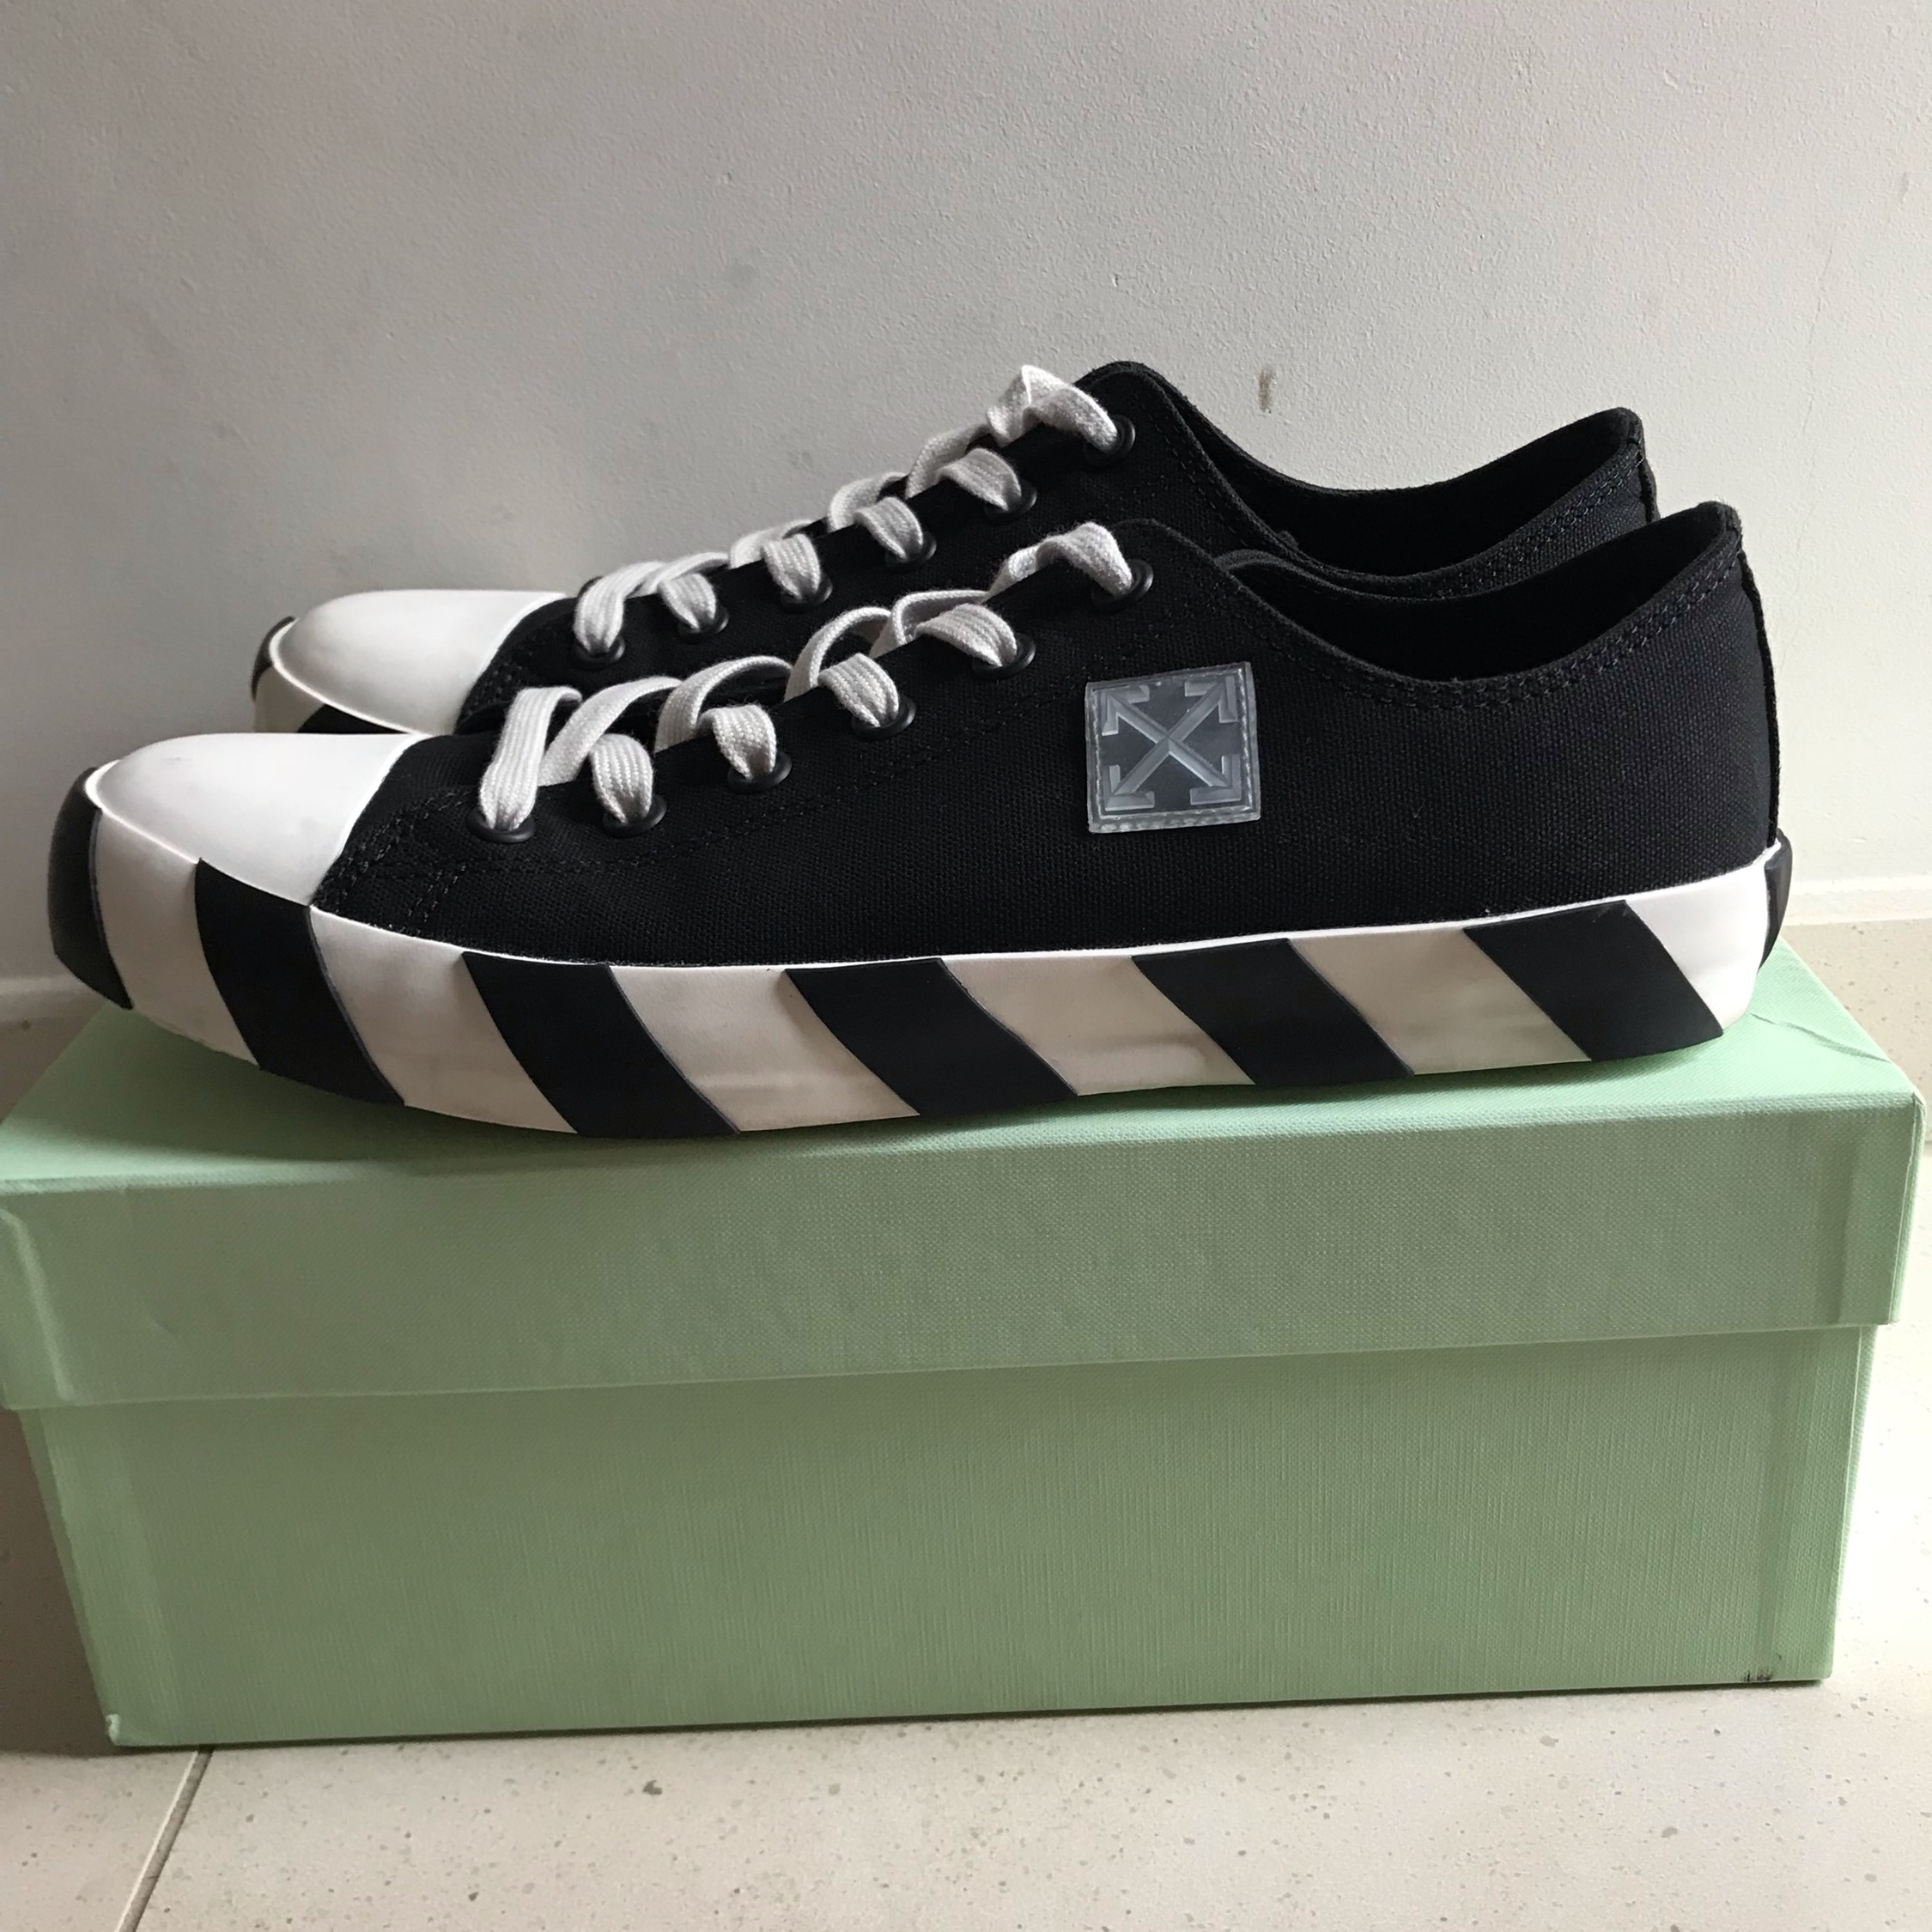 Off-White Striped Canvas Trainers Under Retail